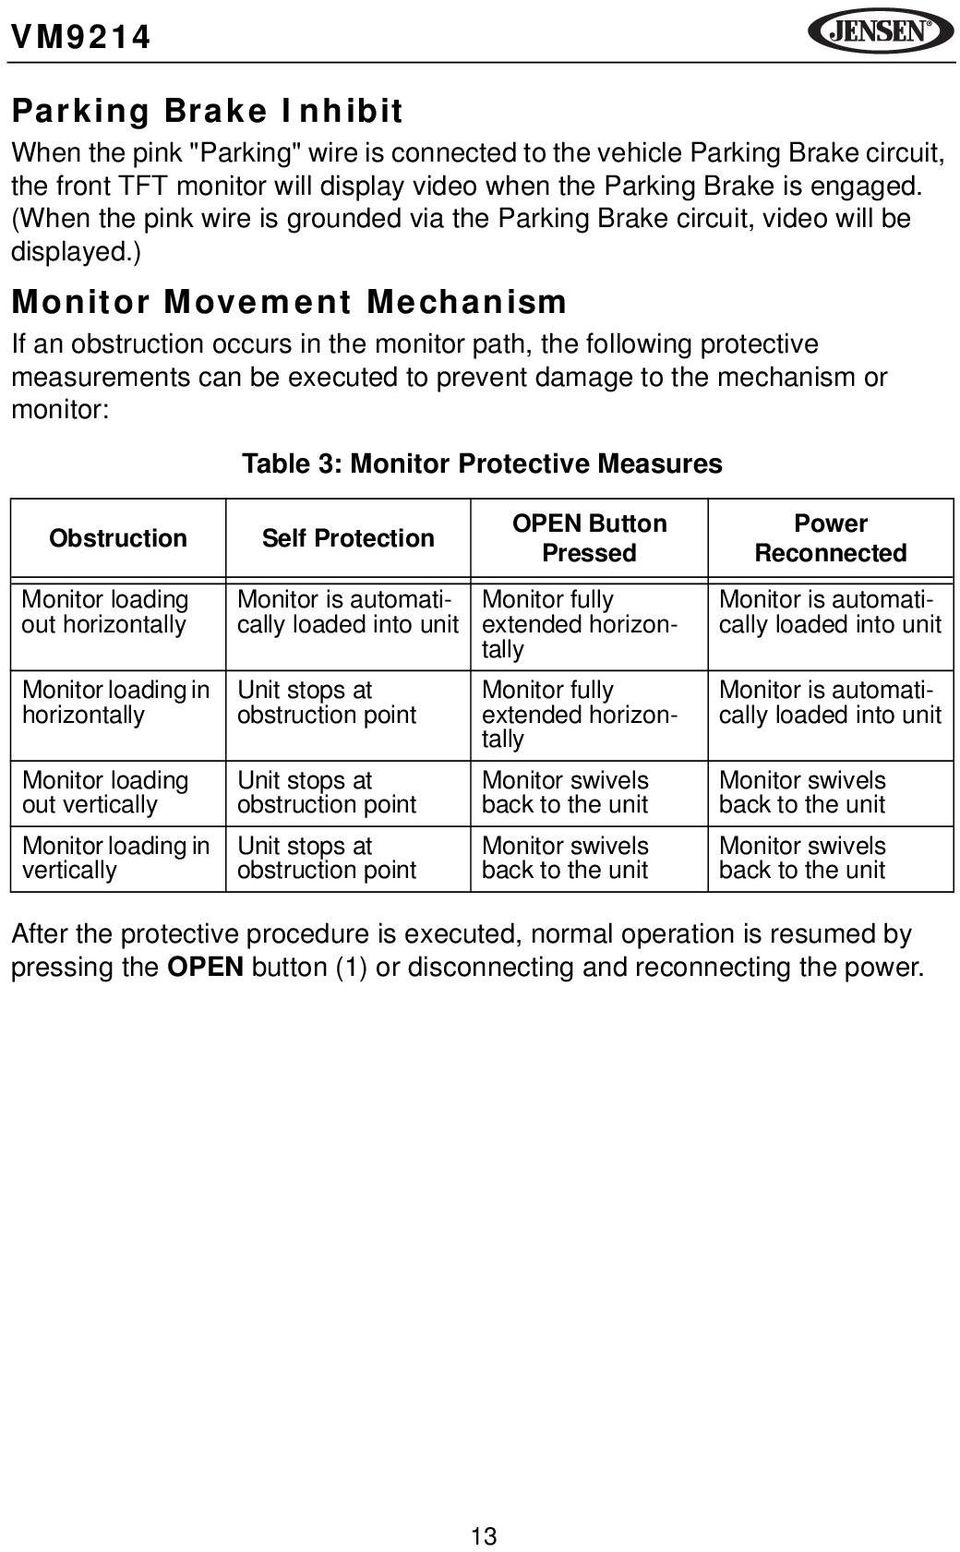 ) Monitor Movement Mechanism If an obstruction occurs in the monitor path, the following protective measurements can be executed to prevent damage to the mechanism or monitor: Table 3: Monitor